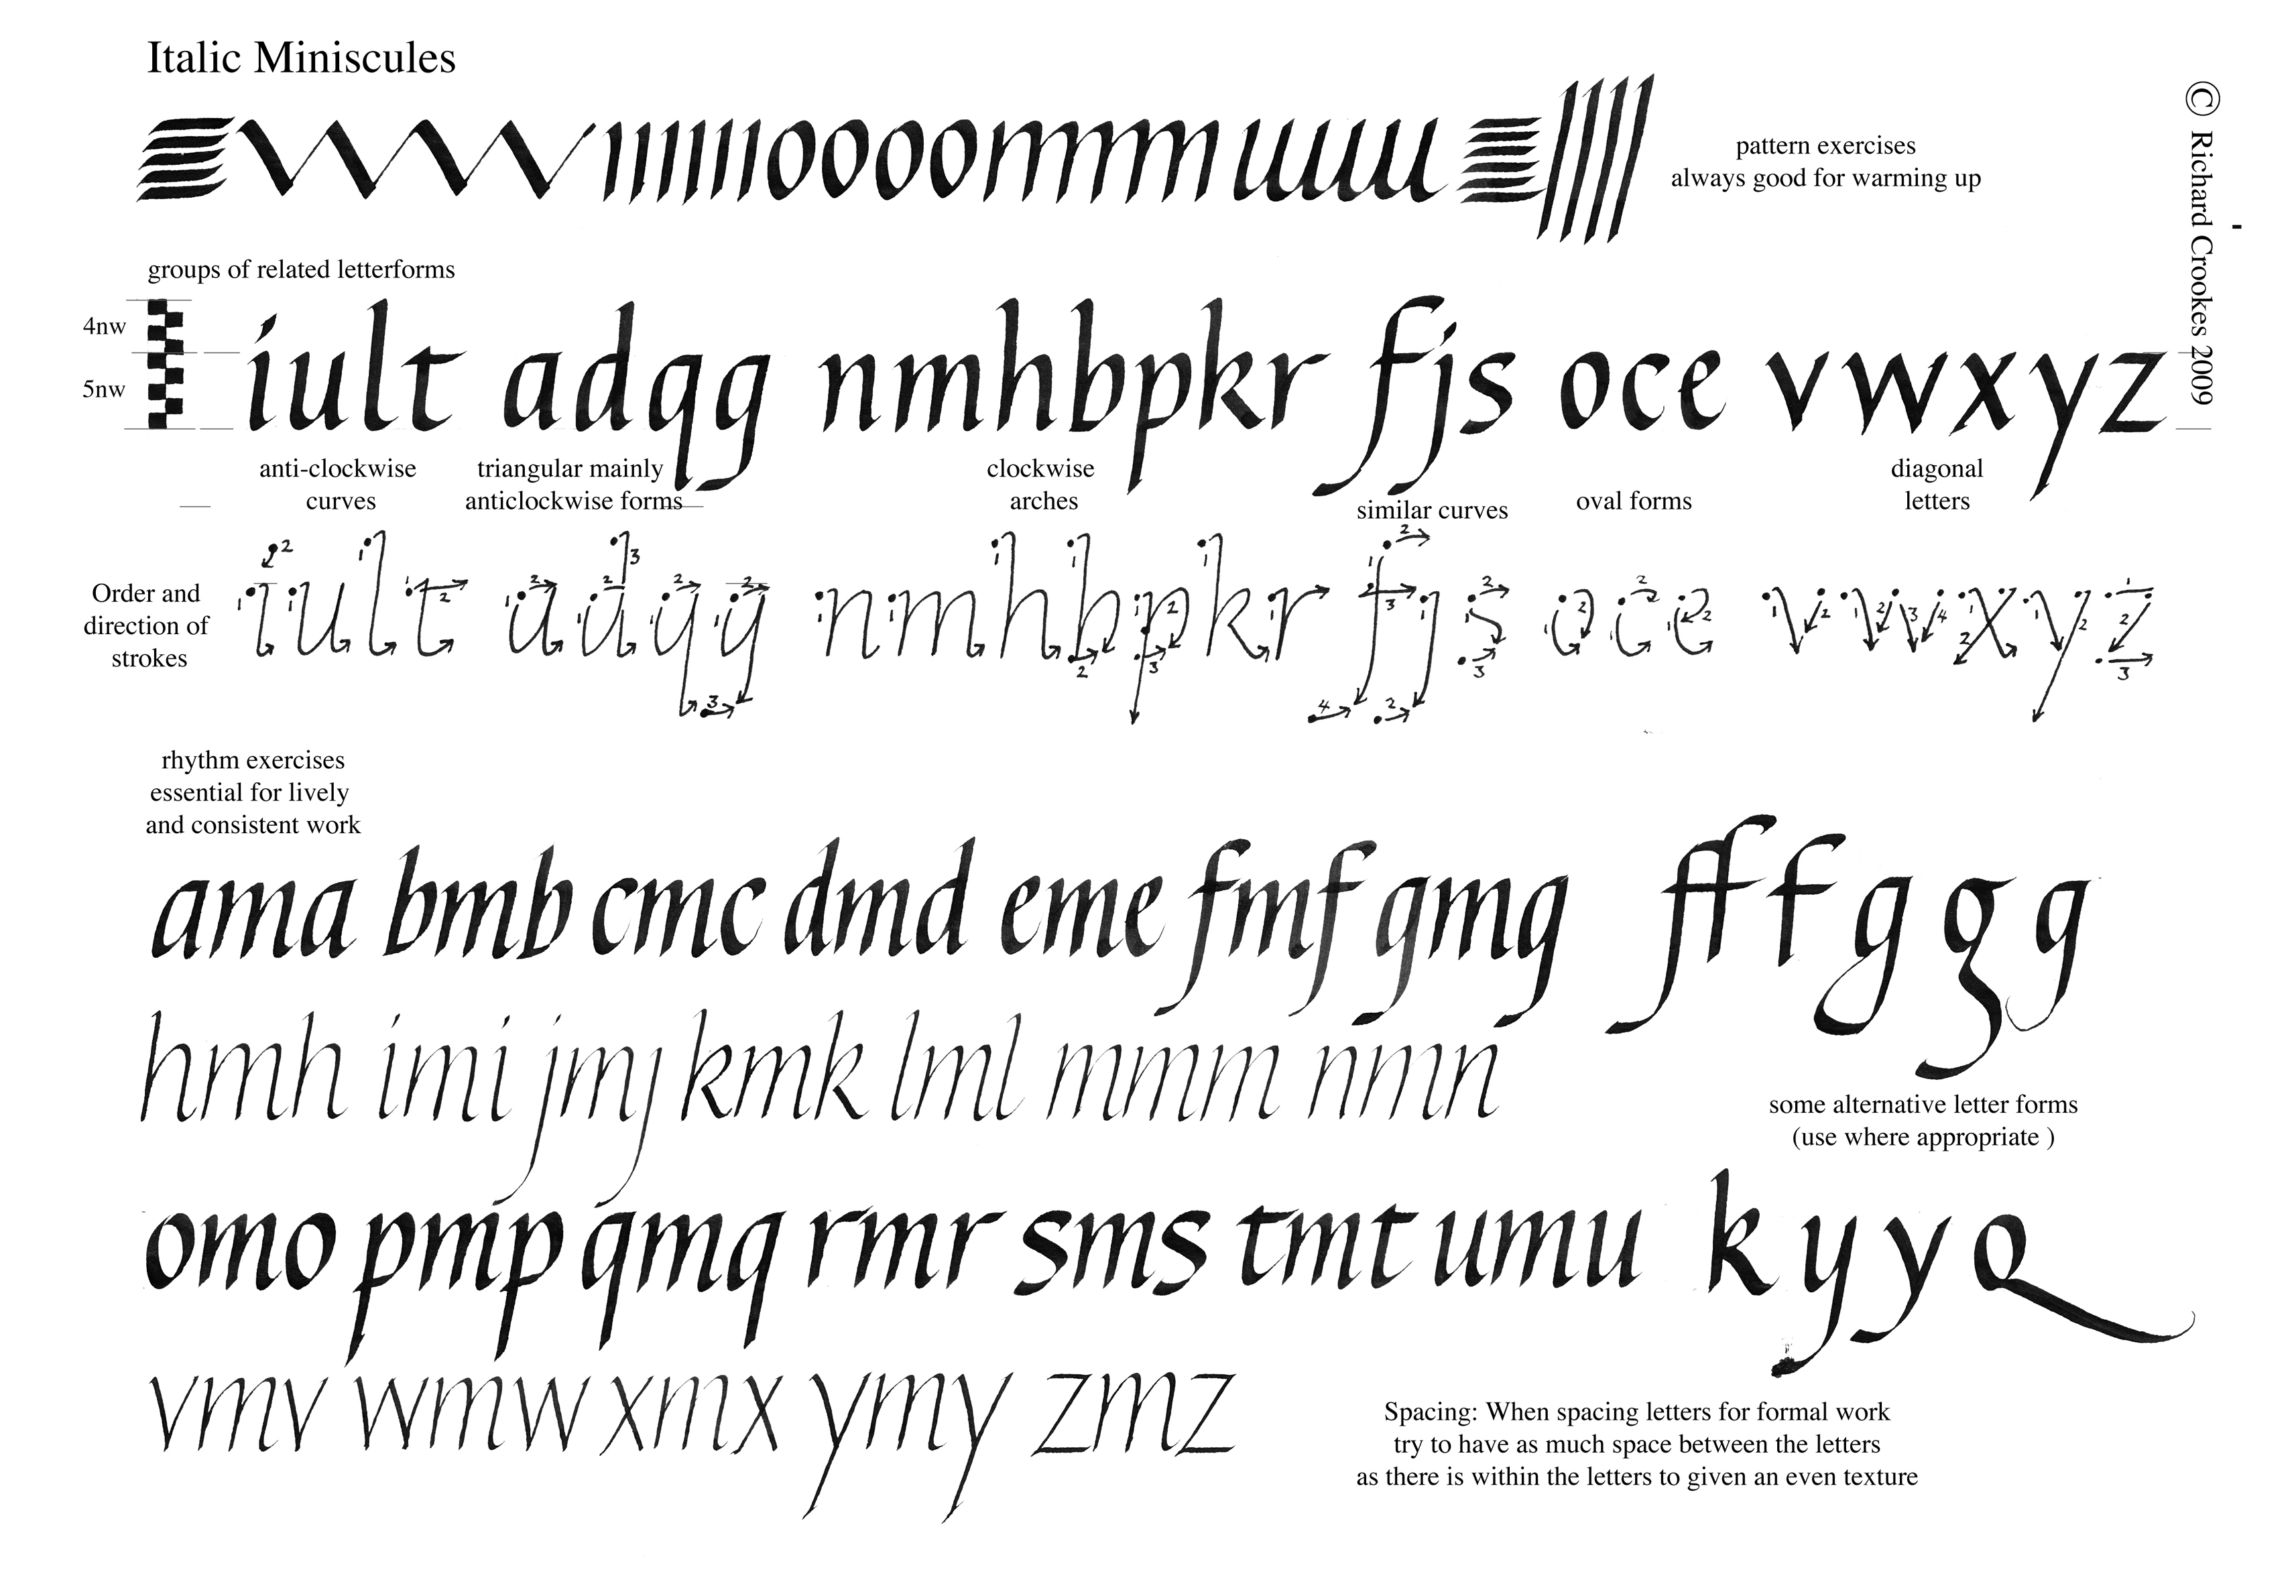 Printables Calligraphy Practice Worksheets italic worksheets with thanks to richard crookes updated may if you would like see more of richards work and download these have a look at his website also he has videos on